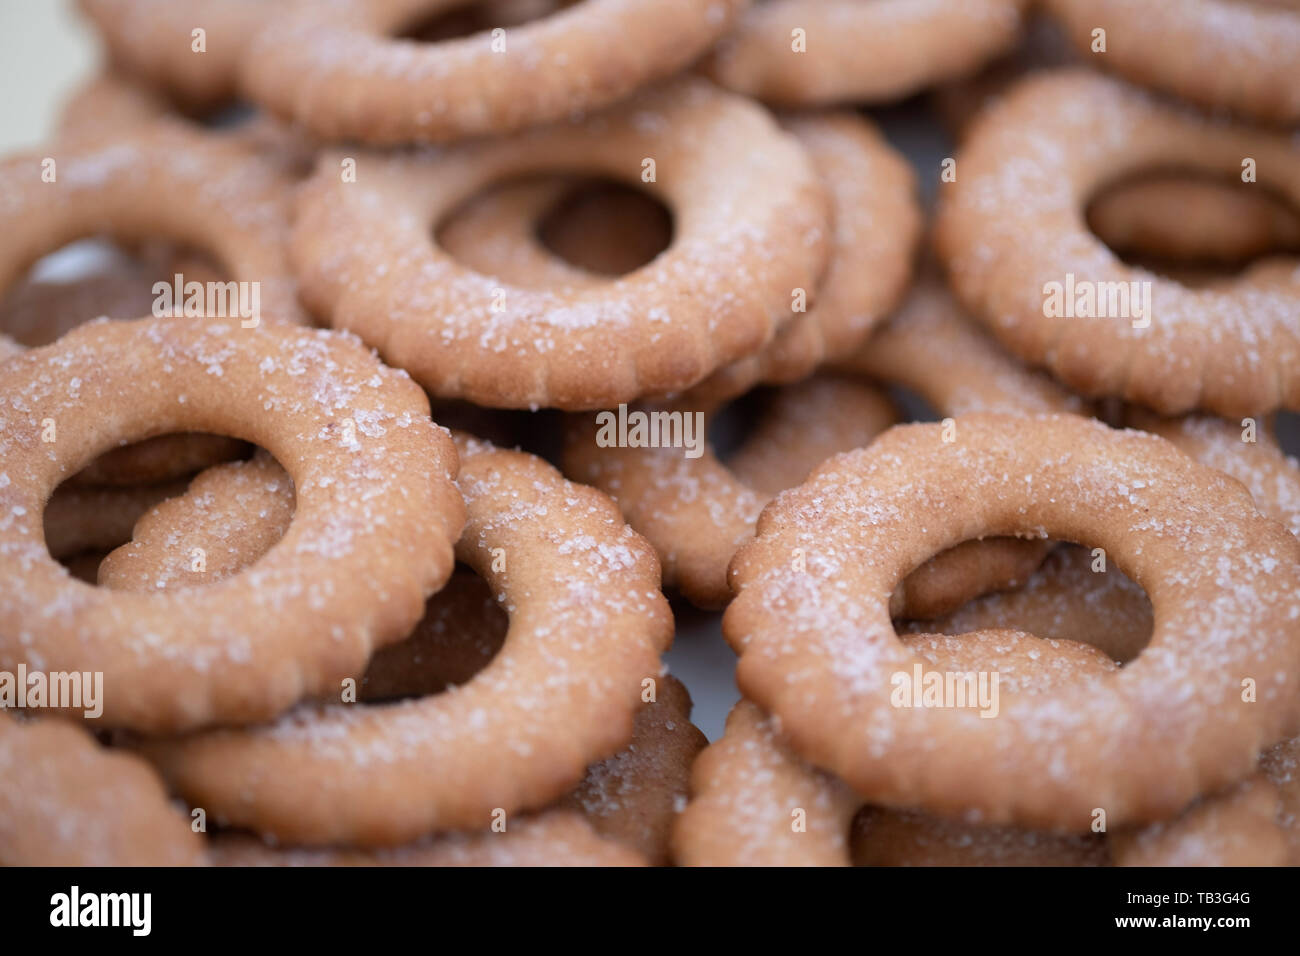 Cookies - Stock Image